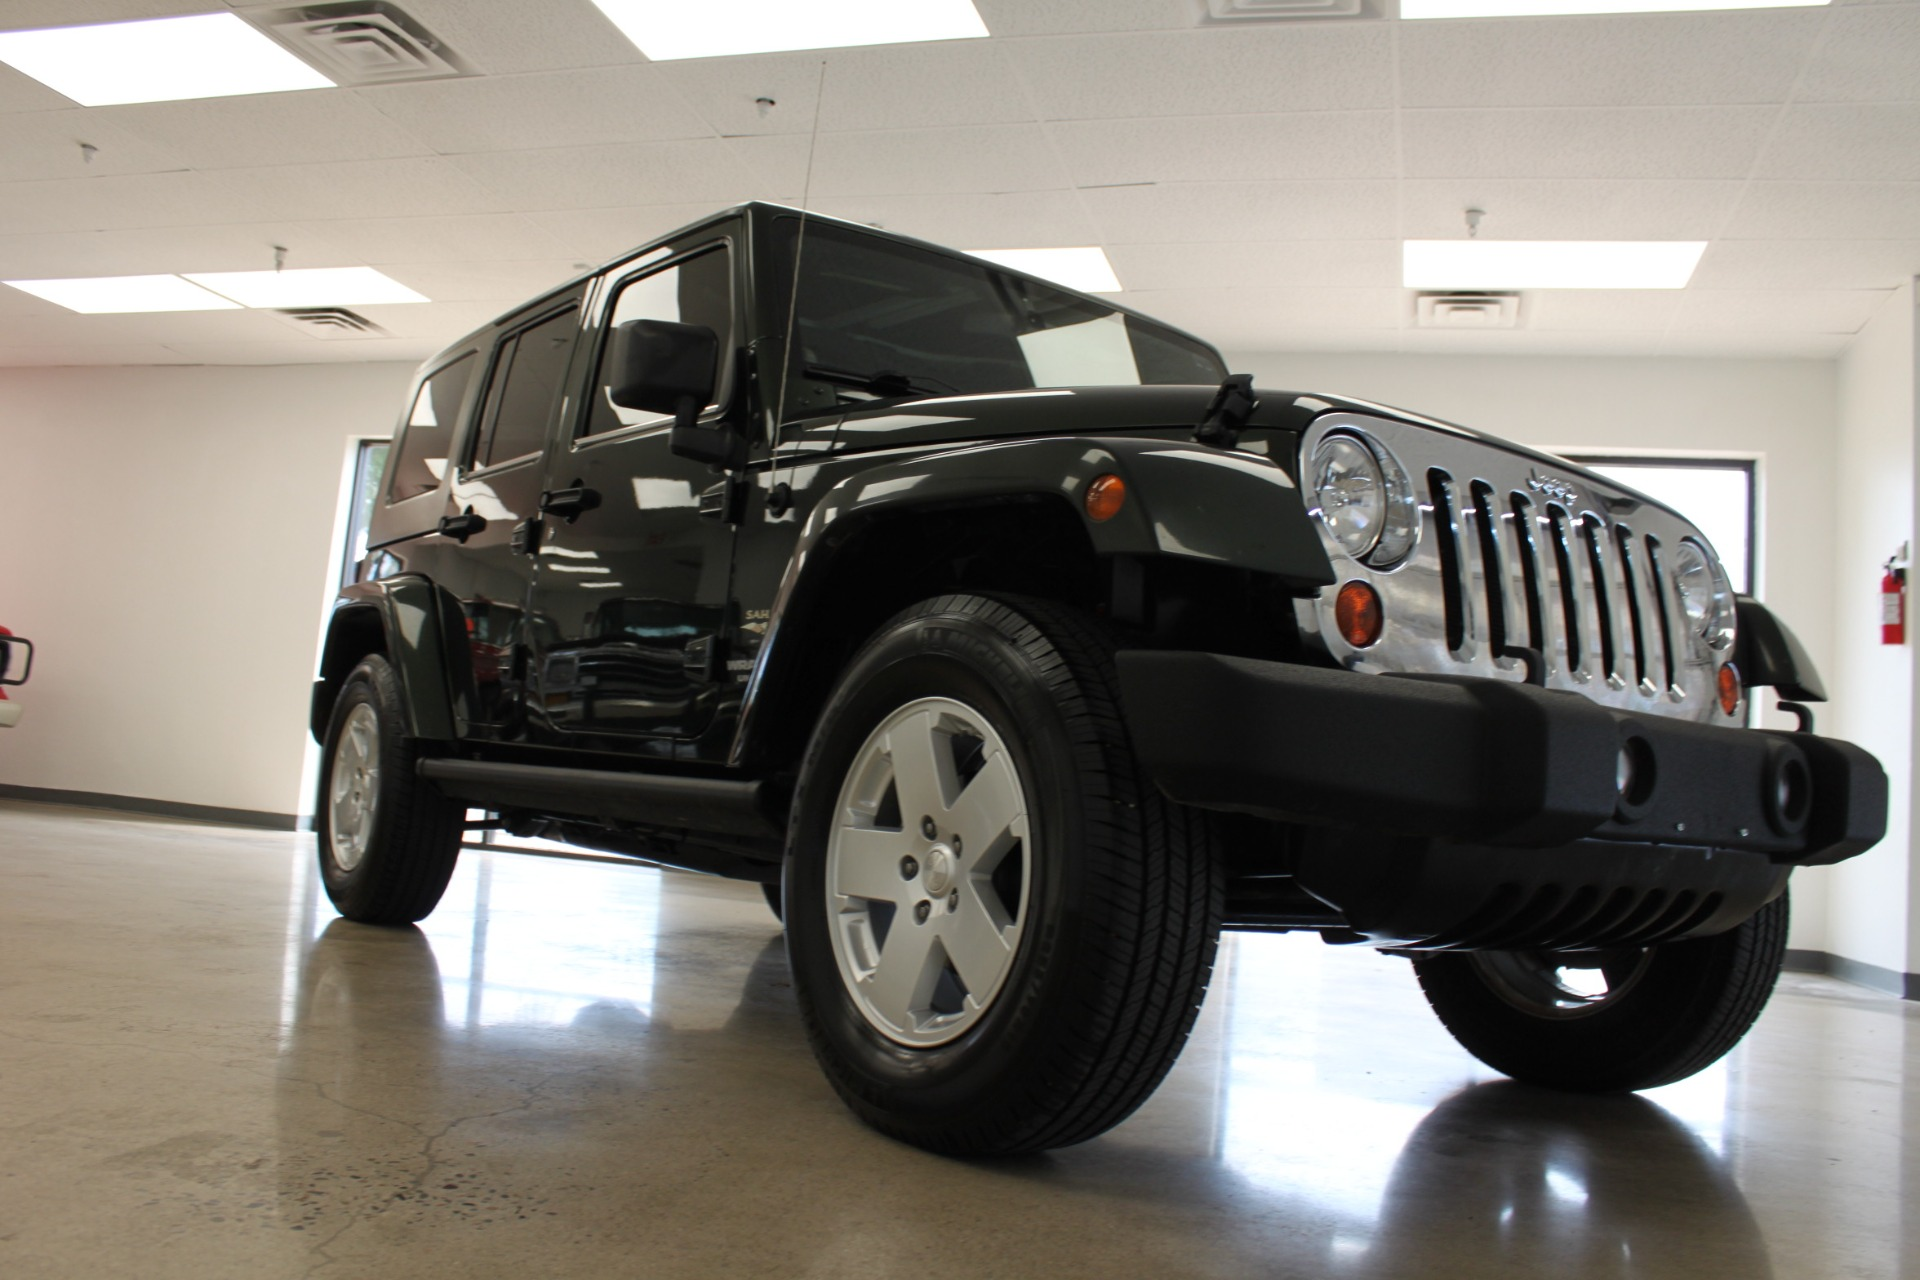 Used-2010-Jeep-Wrangler-Unlimited-Sahara-4X4-Fiat